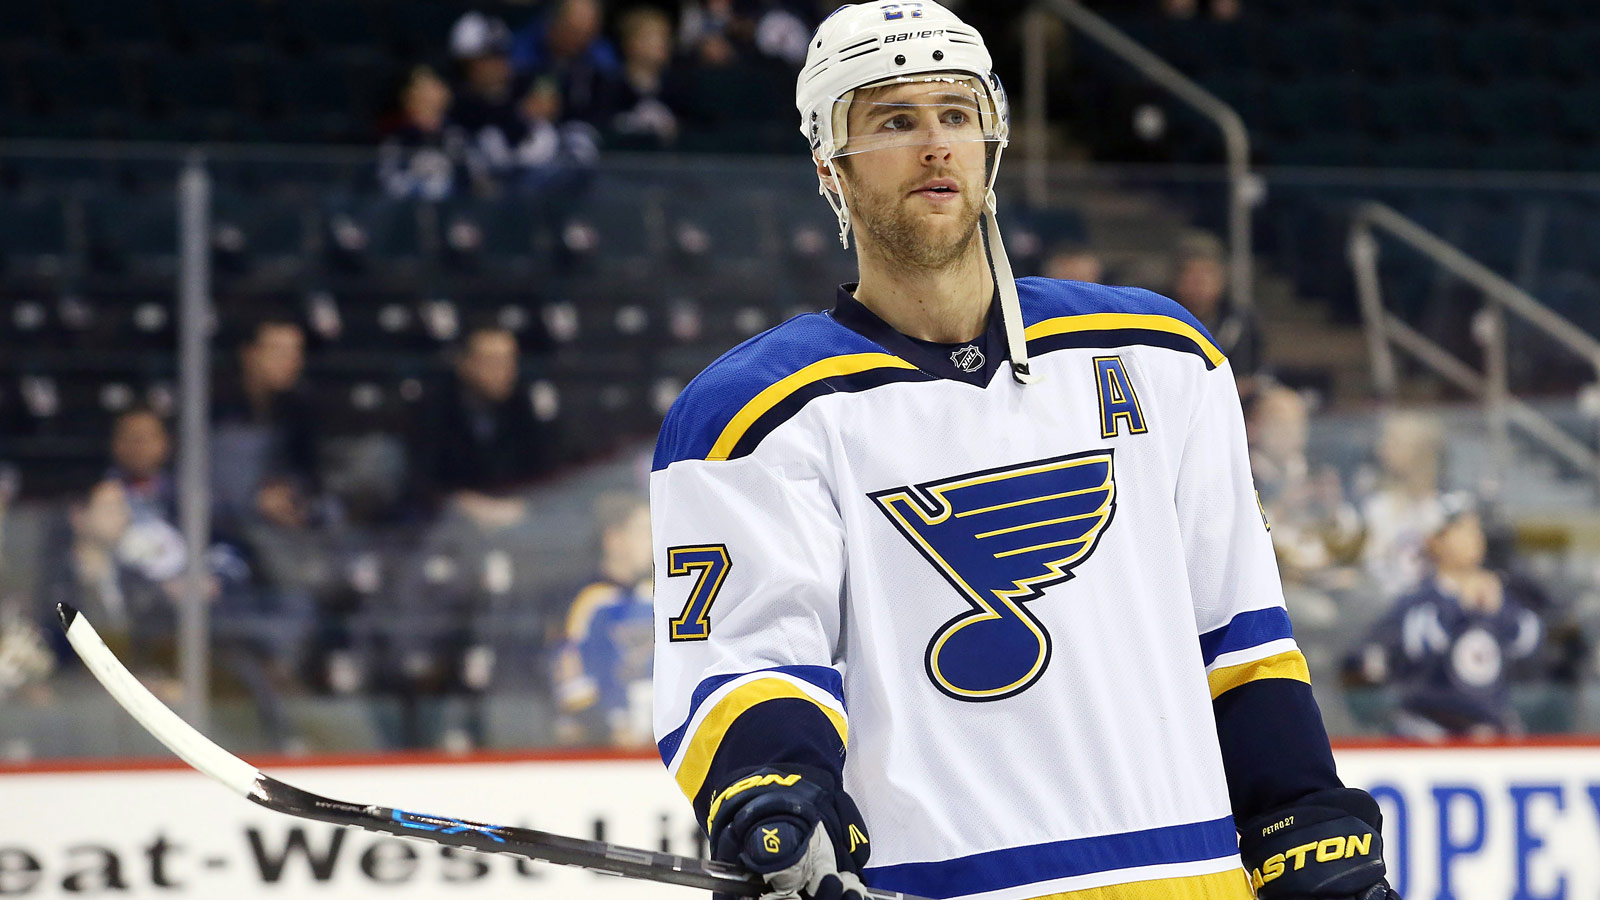 Blues activate Pietrangelo, recall new goalie from Wolves